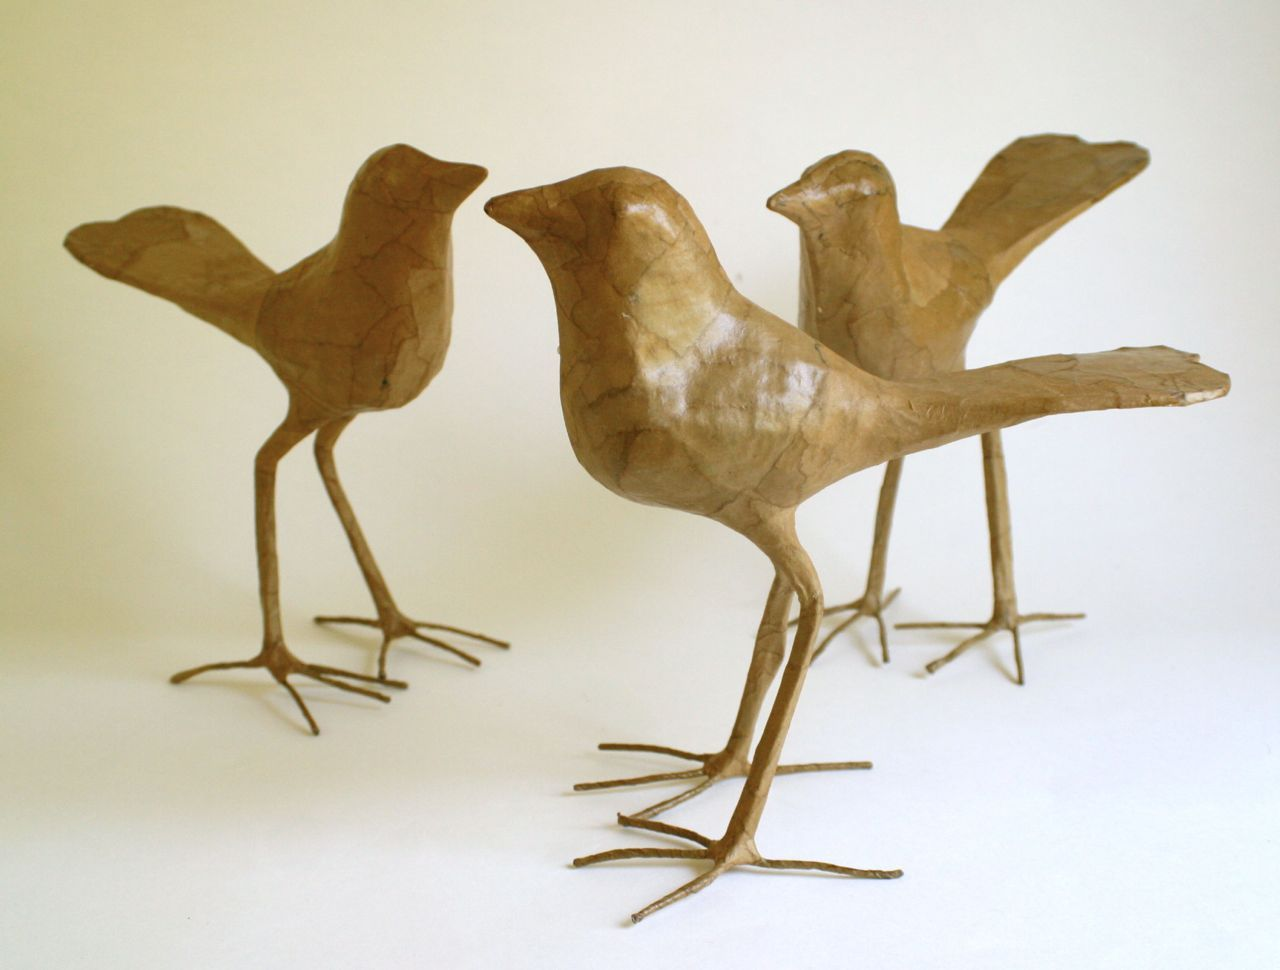 Paper Bird Sculpture Brown Birds Craft Paper Birds Paper Papier Mache